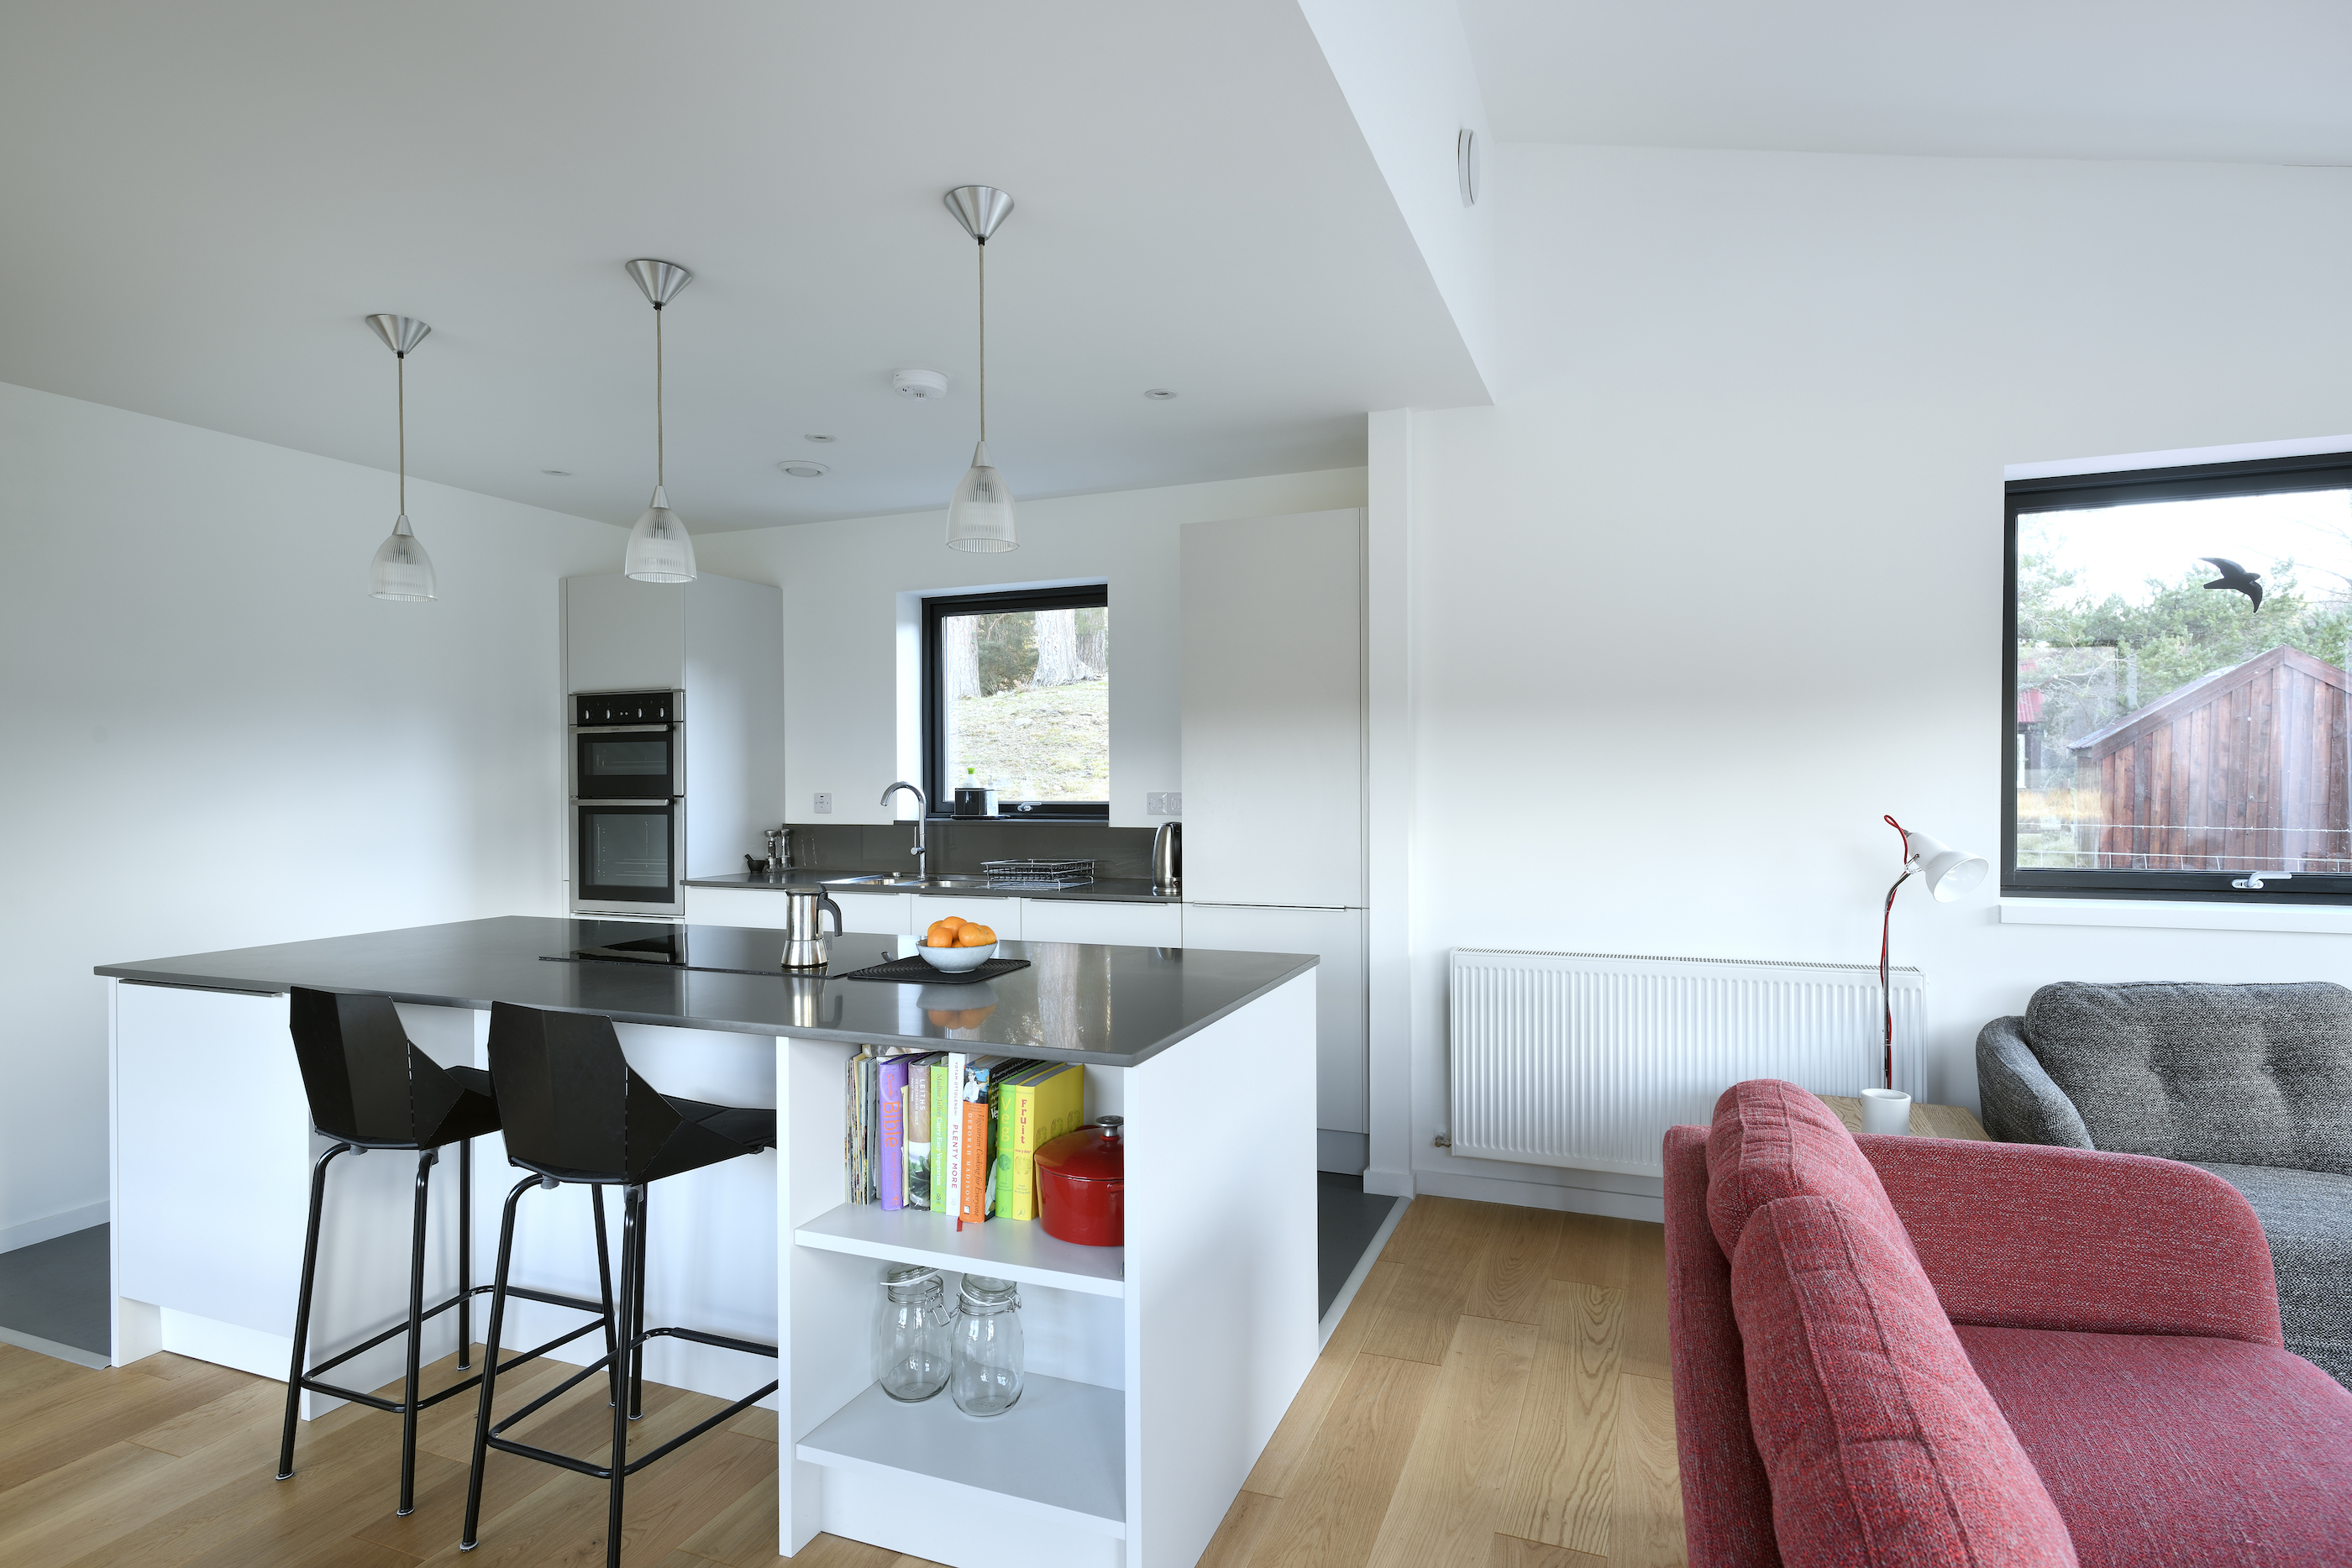 R.House Kitchen Design